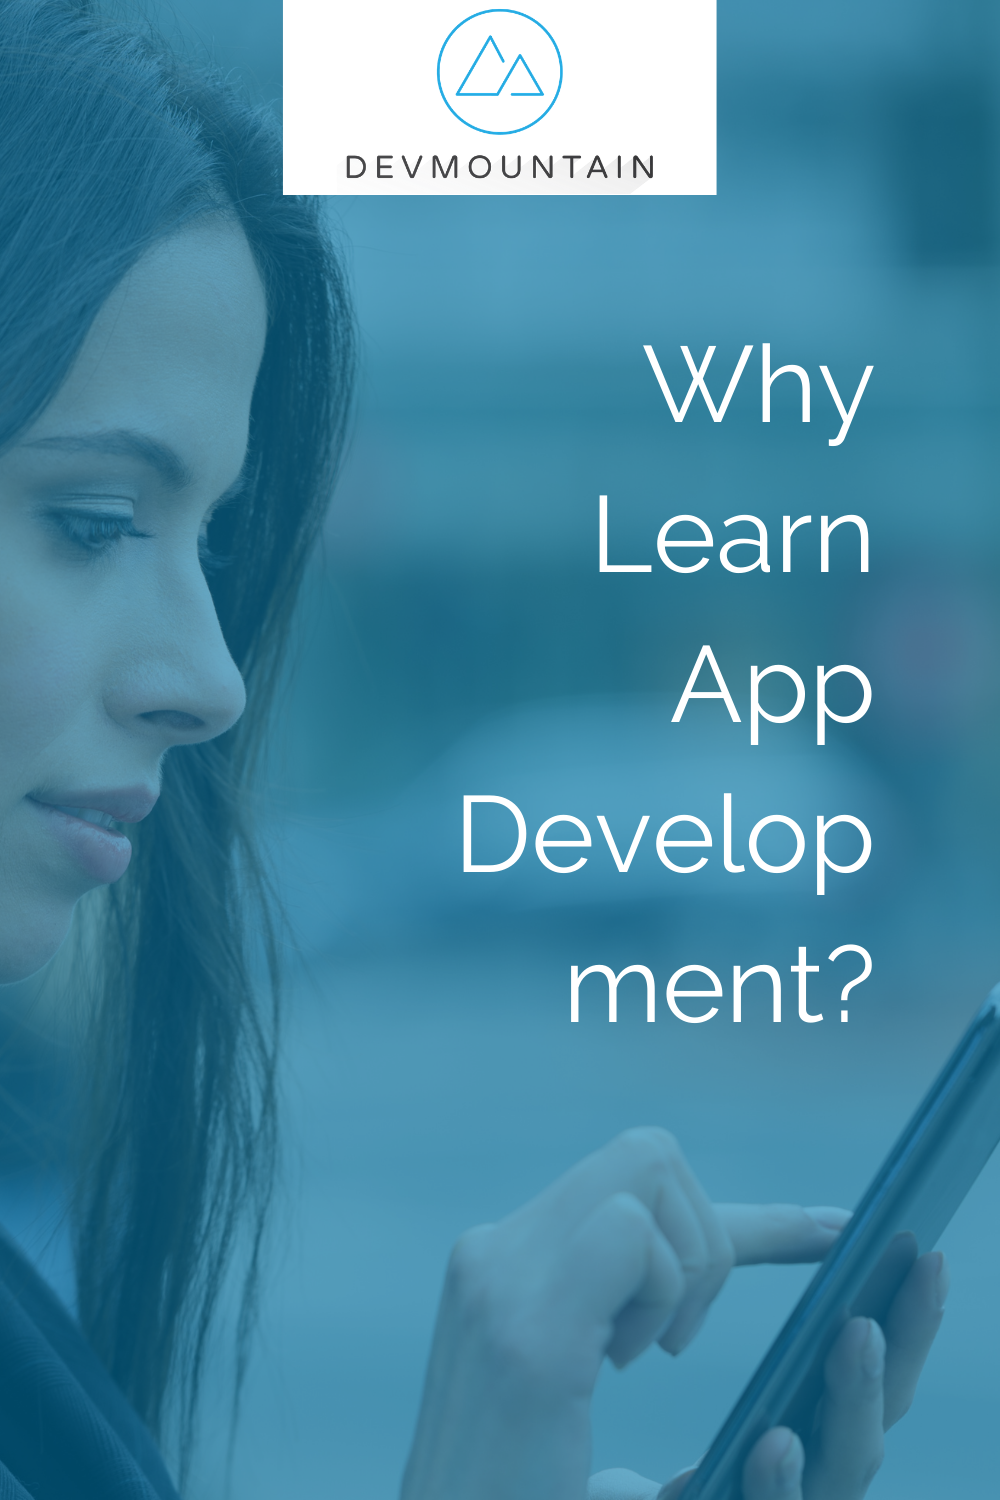 What is the best way to learn app development?